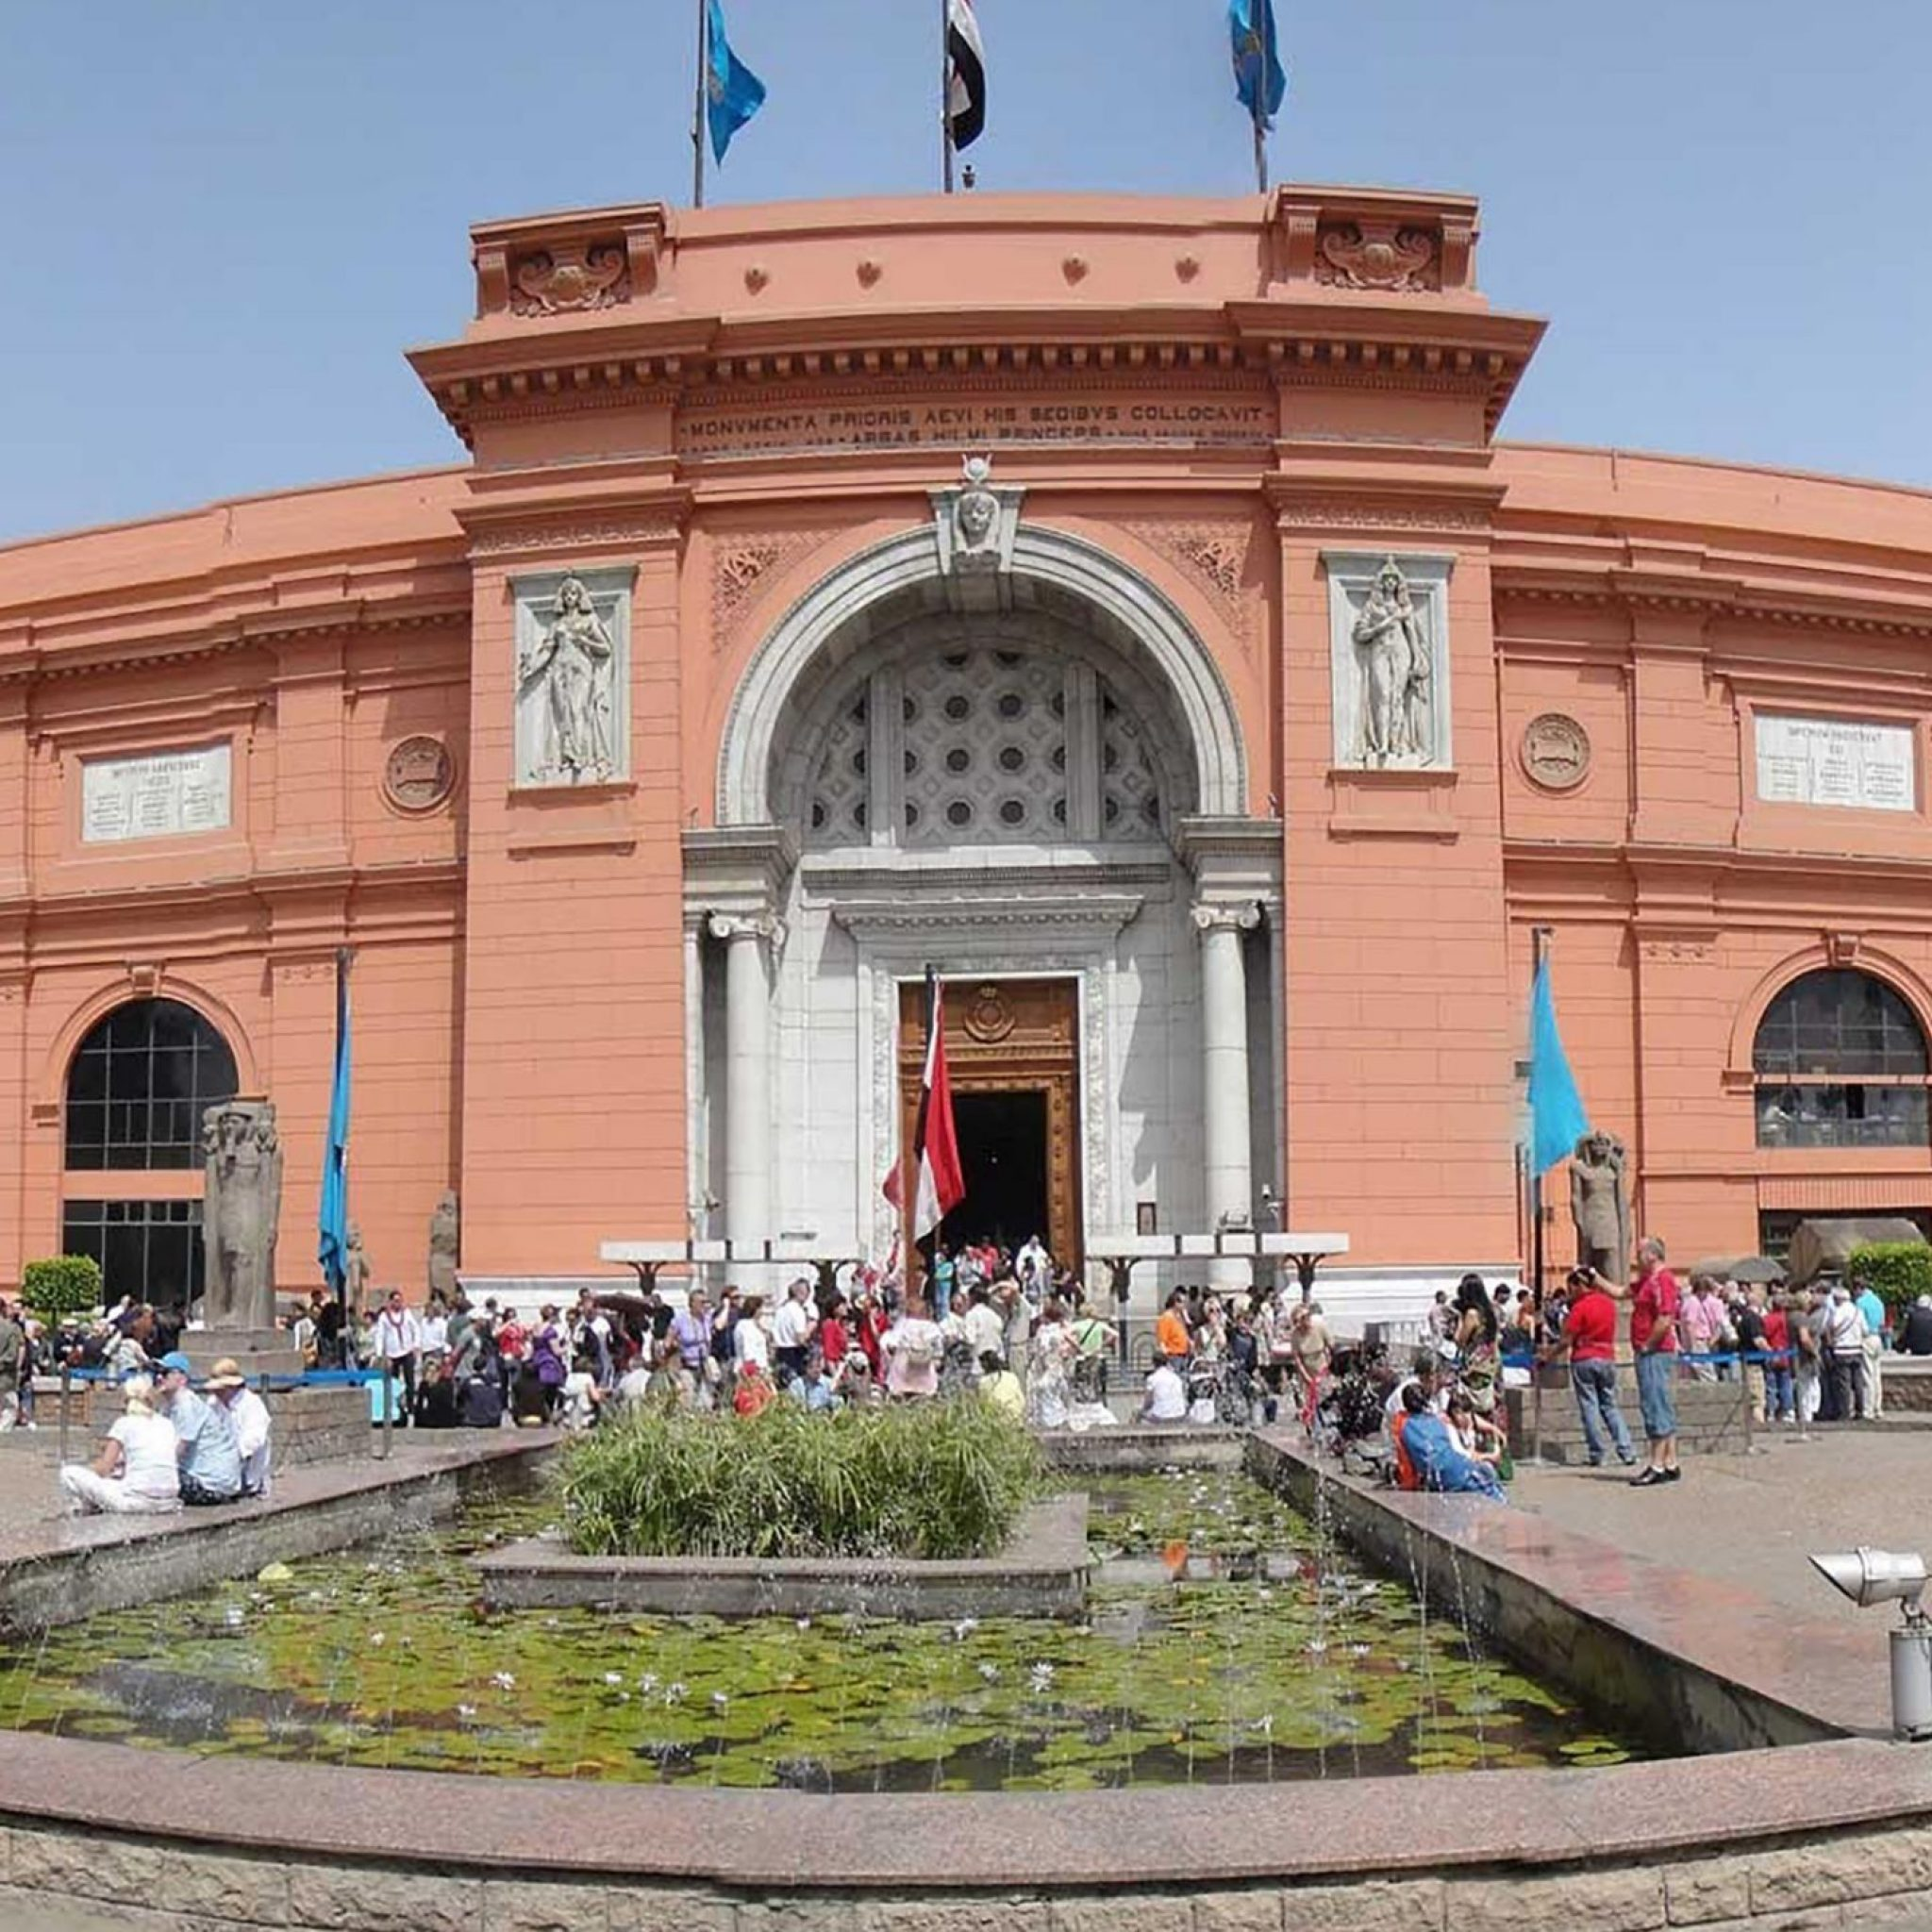 the best image for the Egyptian museum